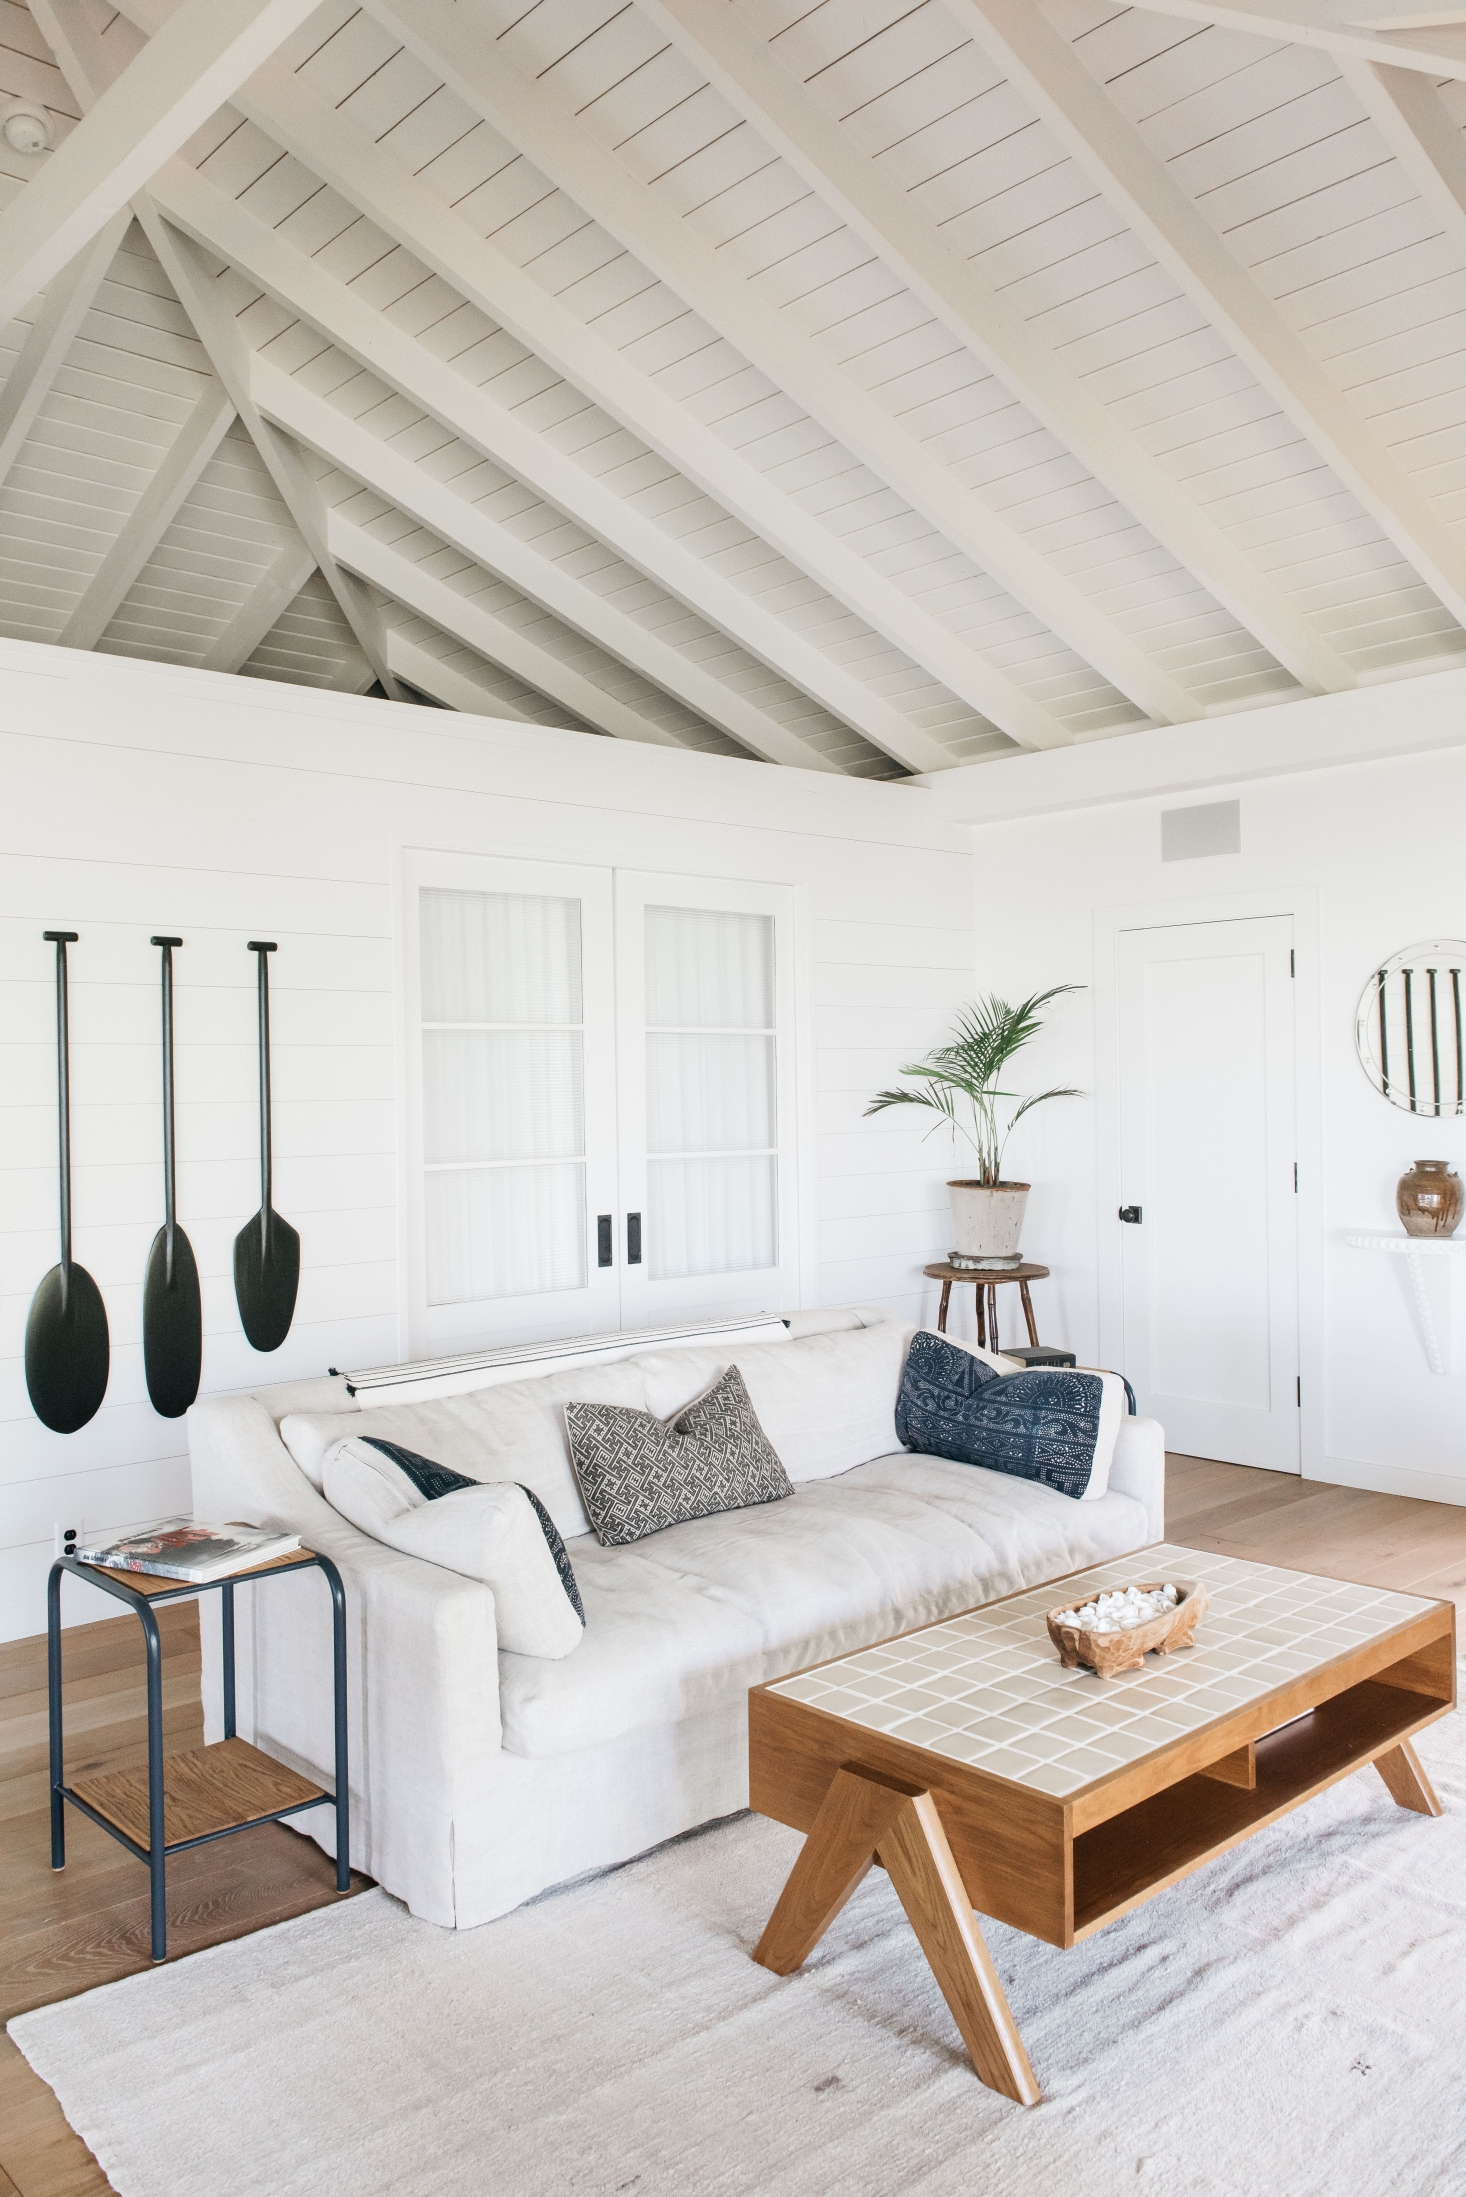 A Vintage Hawaiian Beach Cottage Restored And Ready For Relaxation Remodelista Beach House Interior House Interior Beach House Interior Design